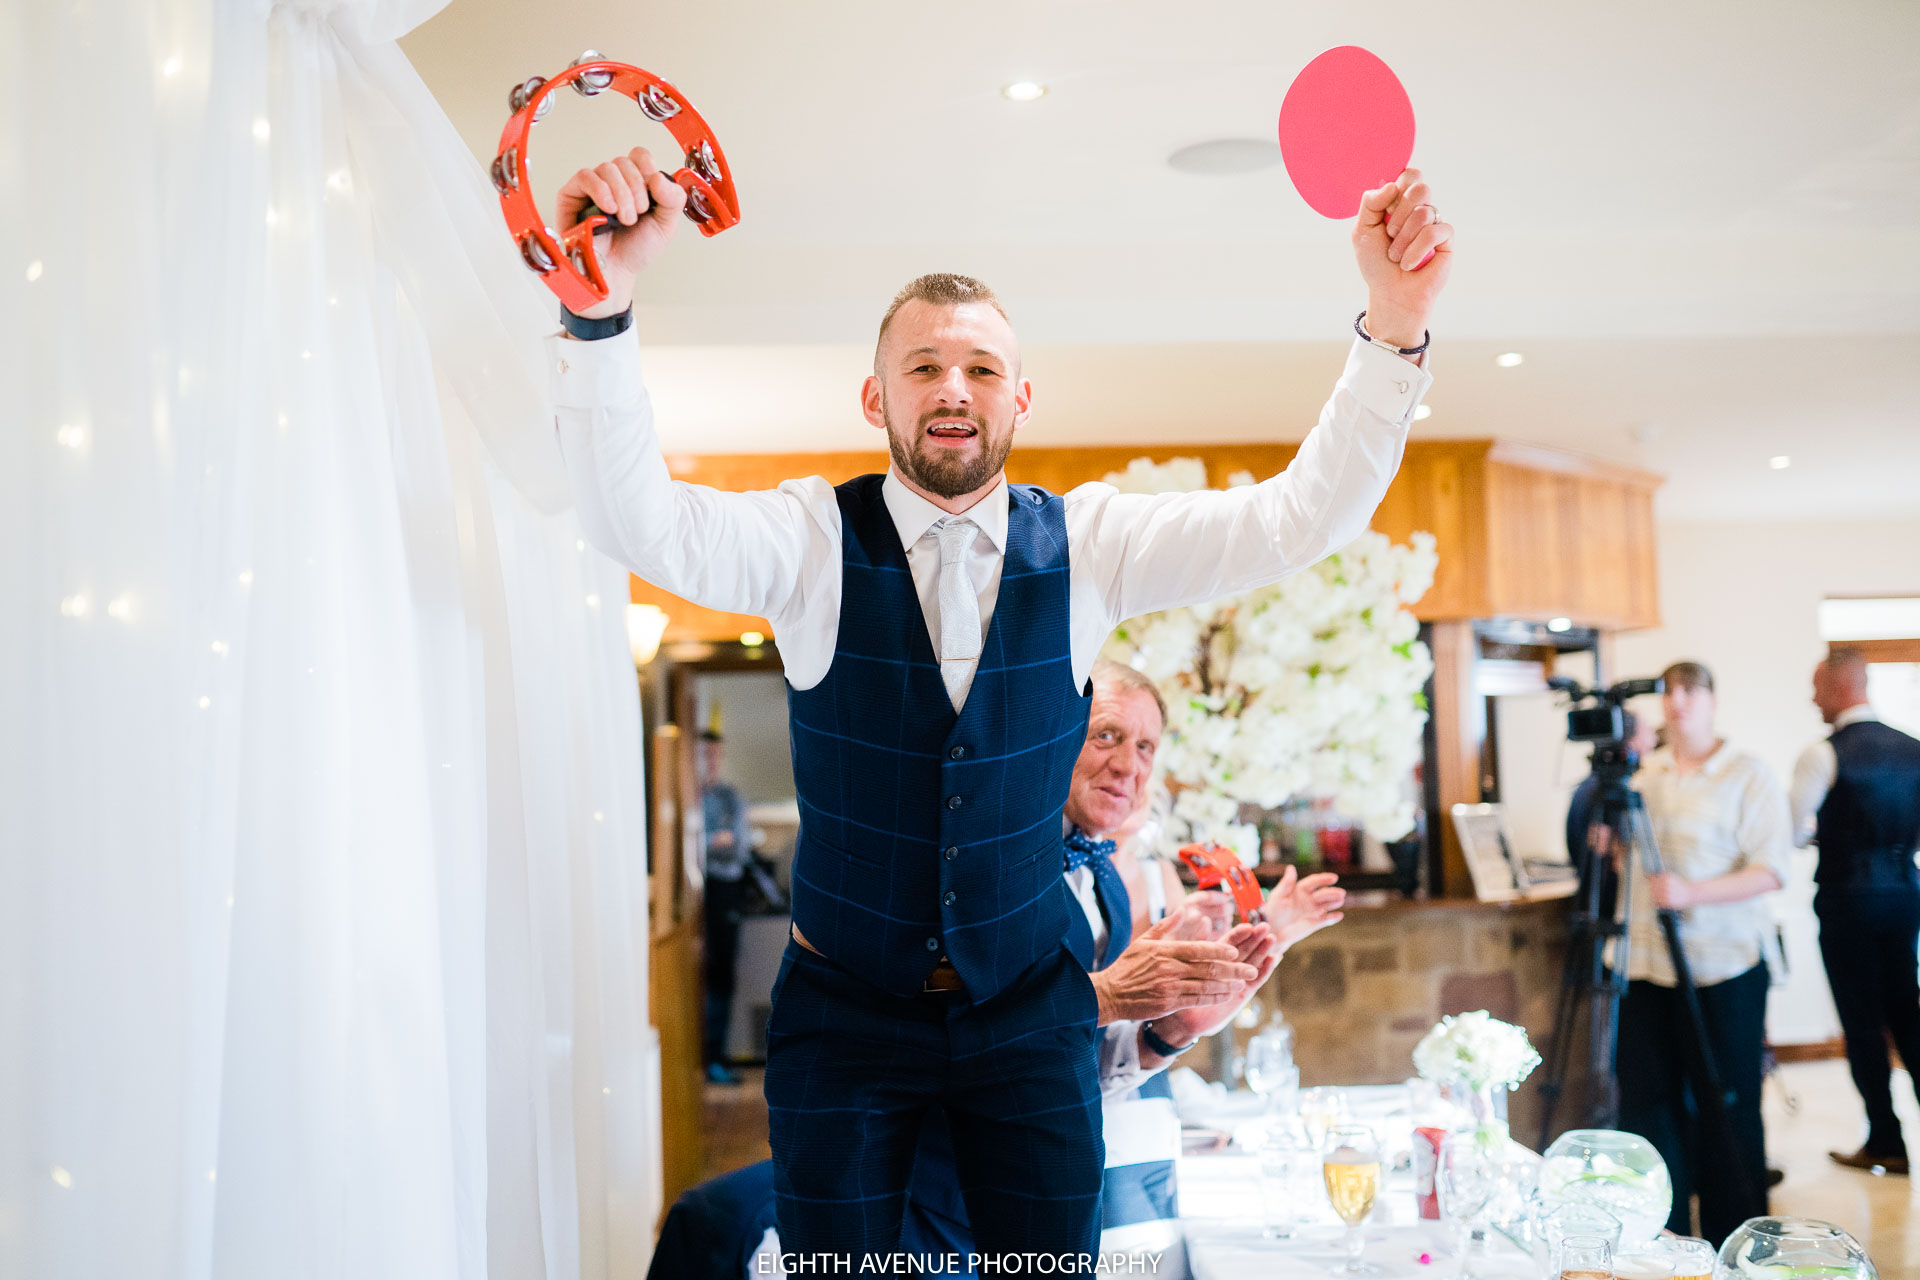 Groom standing on chair